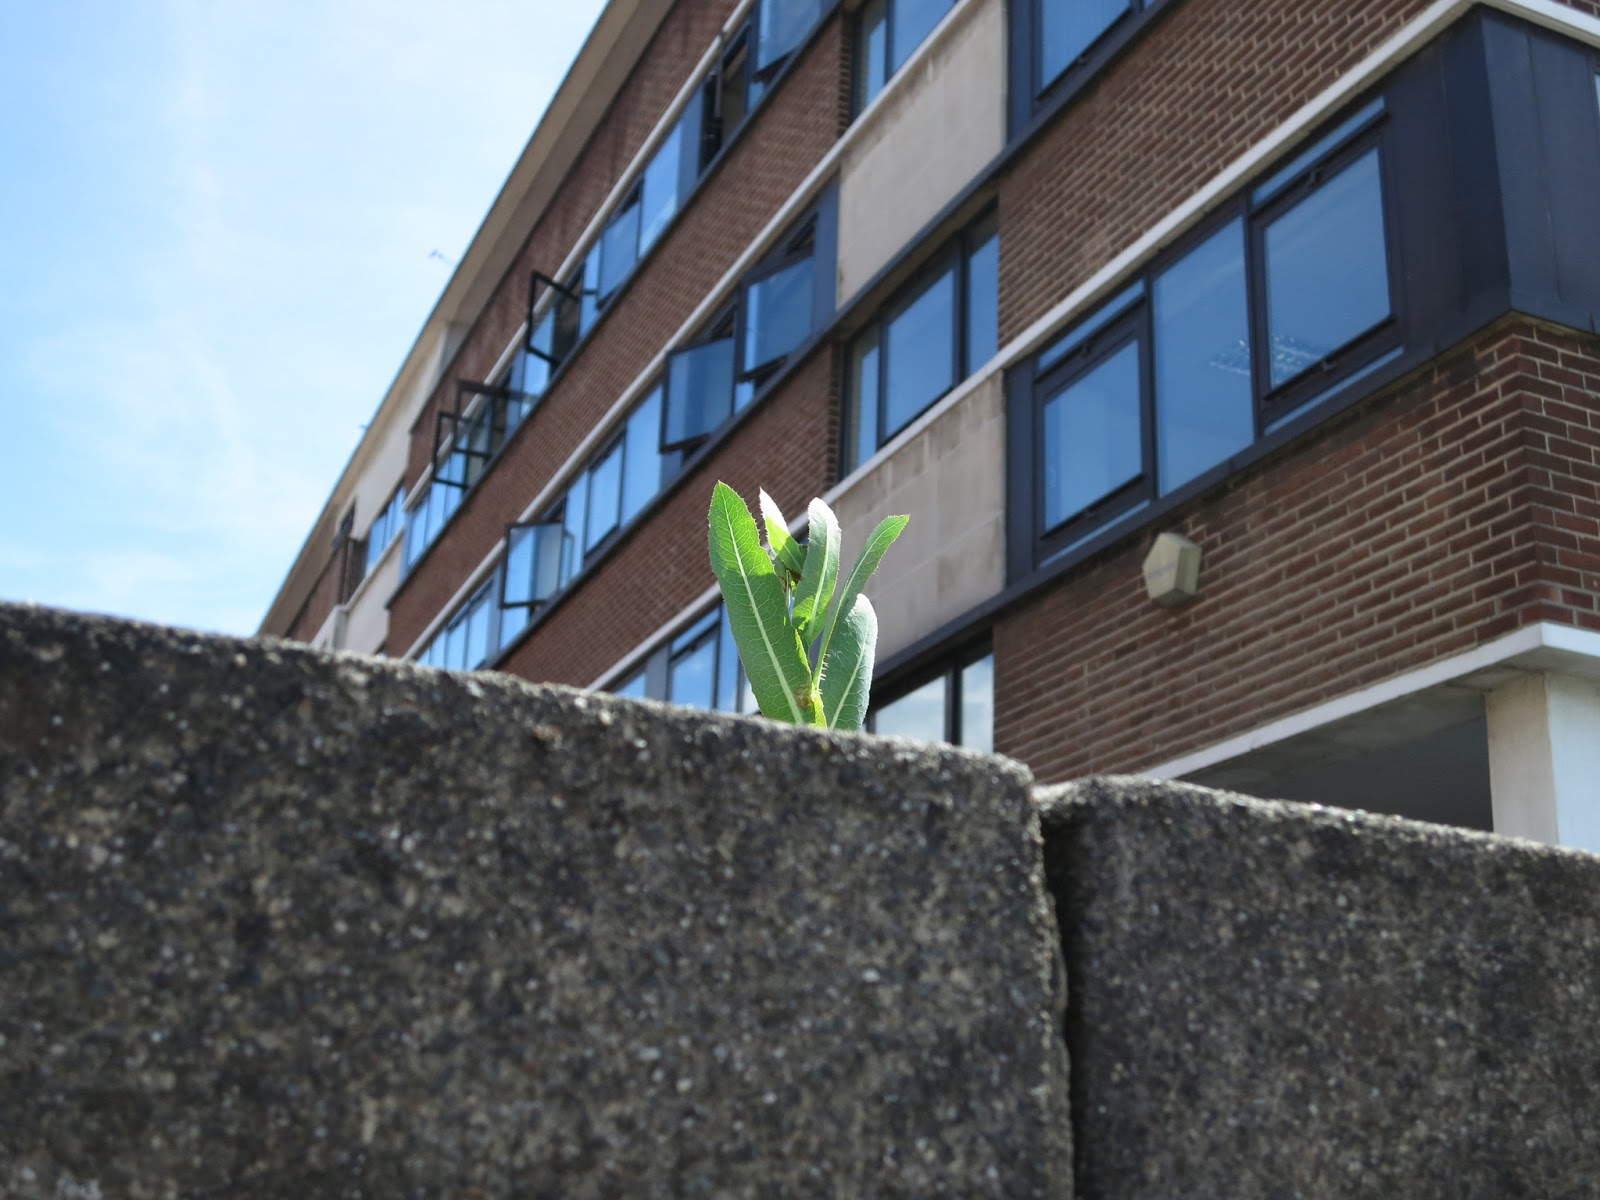 Smooth sow-thistle poking above high wall in front of office building with open windows